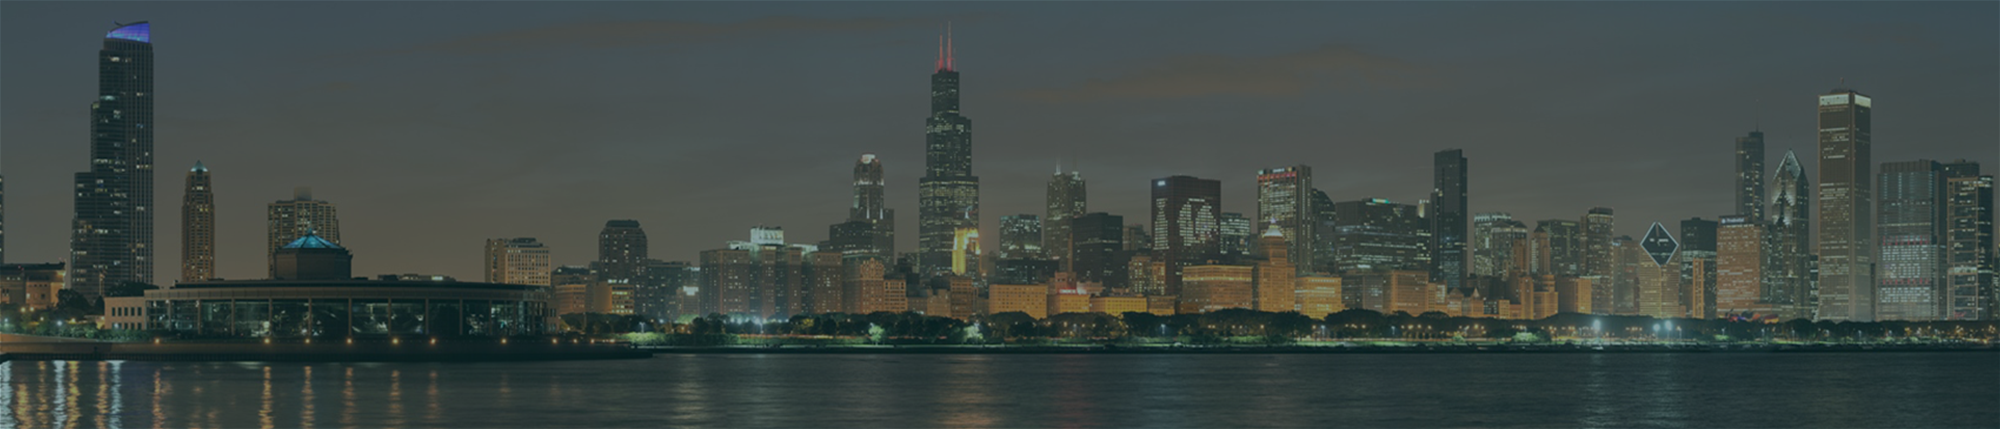 chicago_night_blue